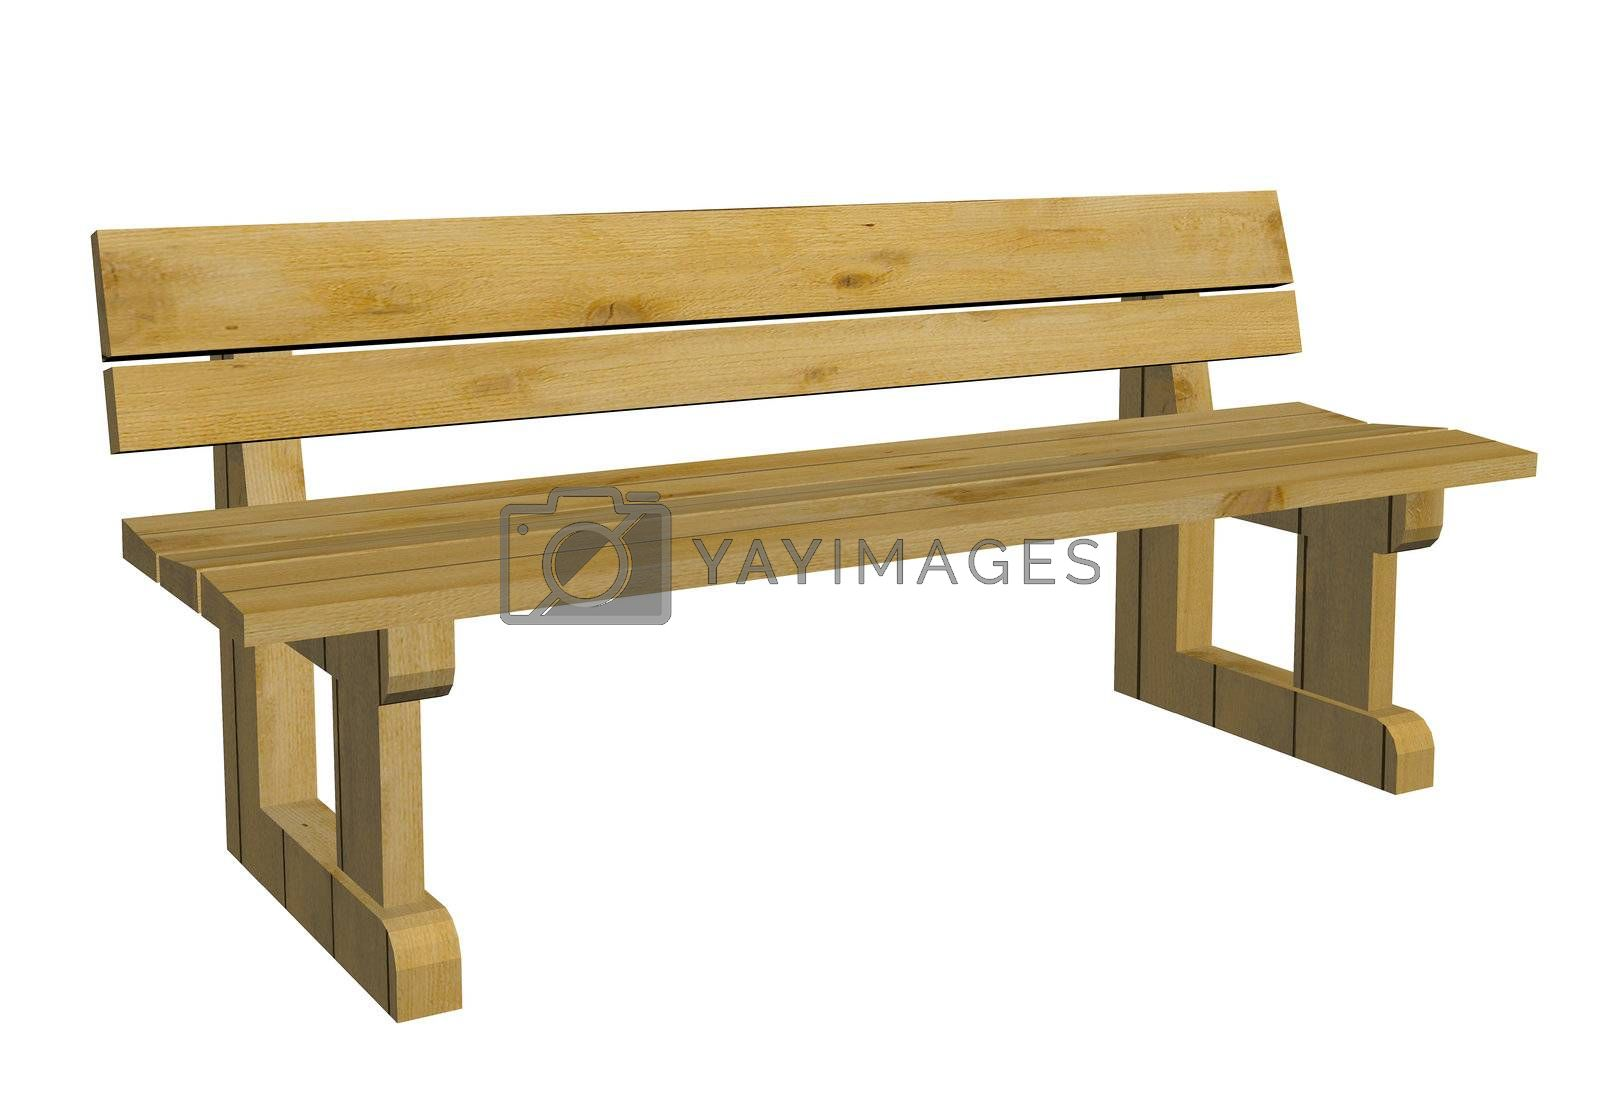 Wooden park or outdoor bench, 3d illustration, isolated against a white background